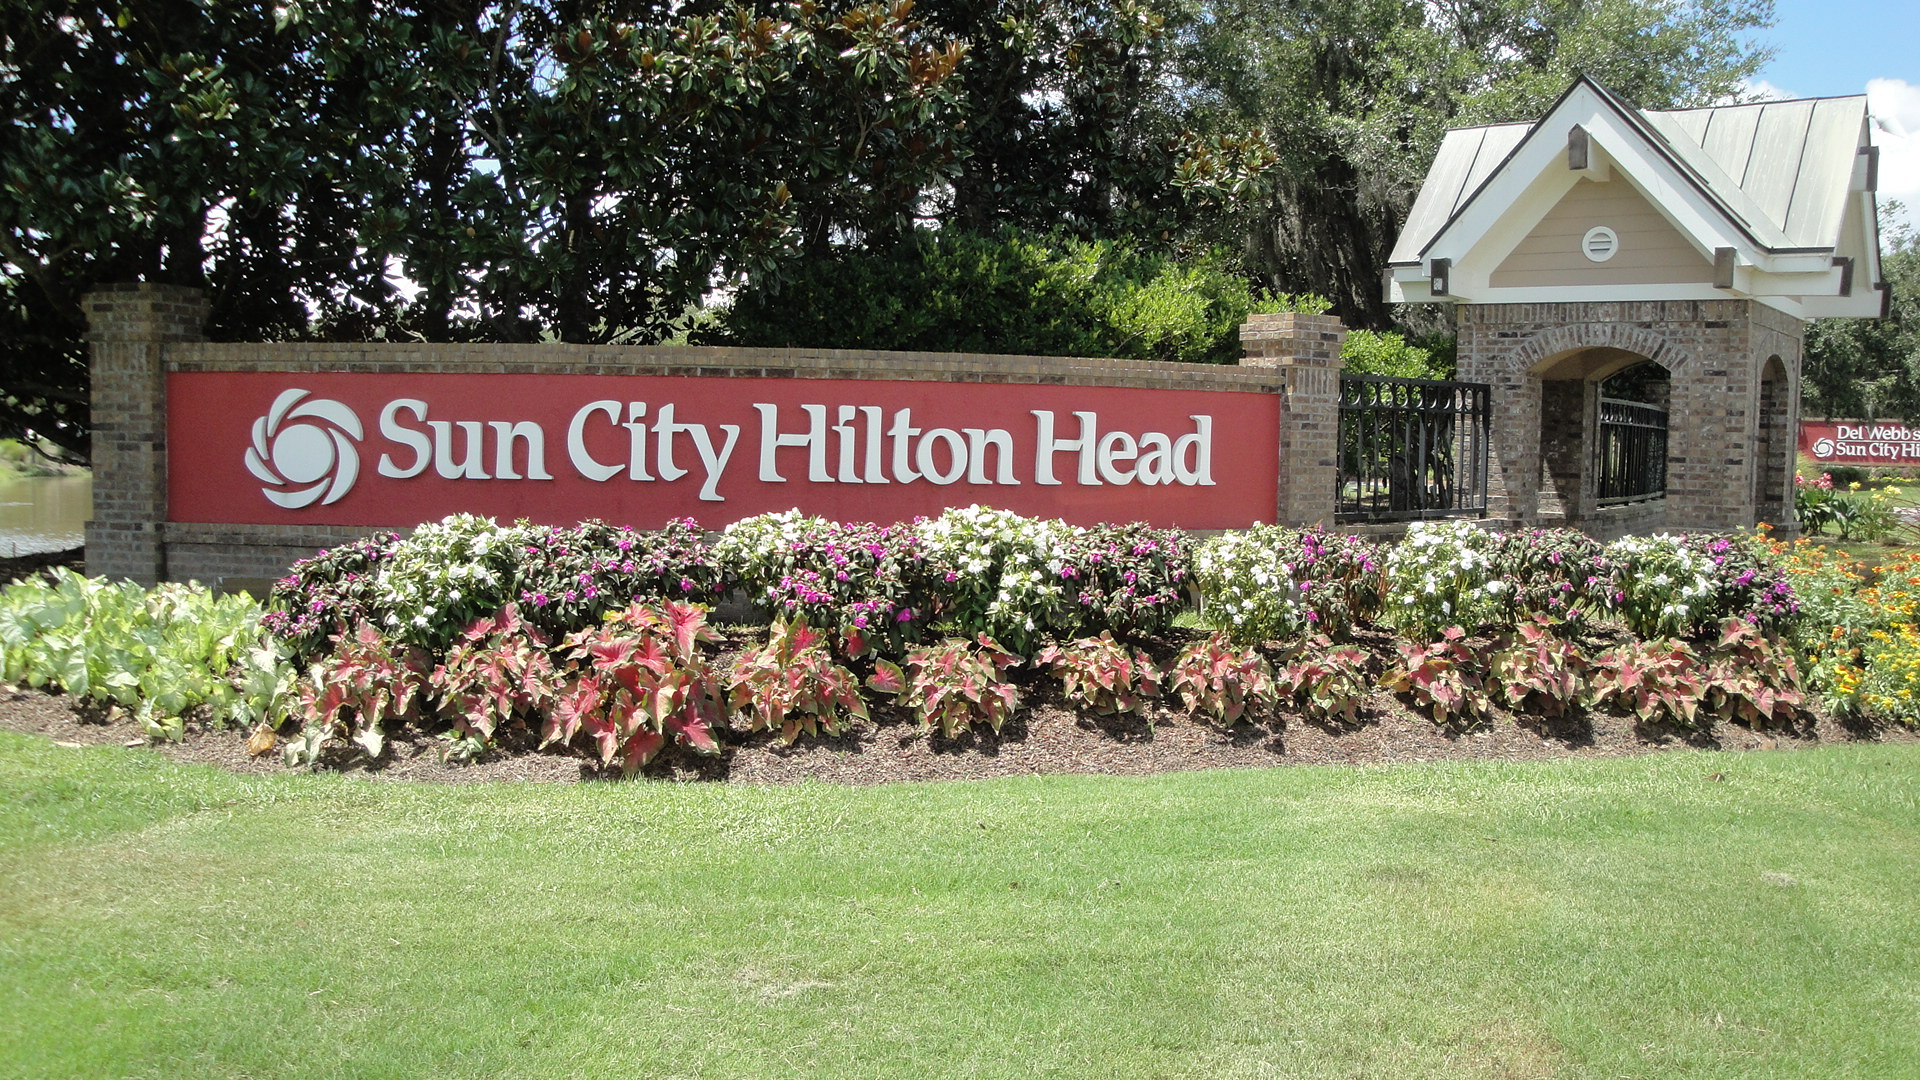 streets in sun city hilton head, bluffton, sc, homes